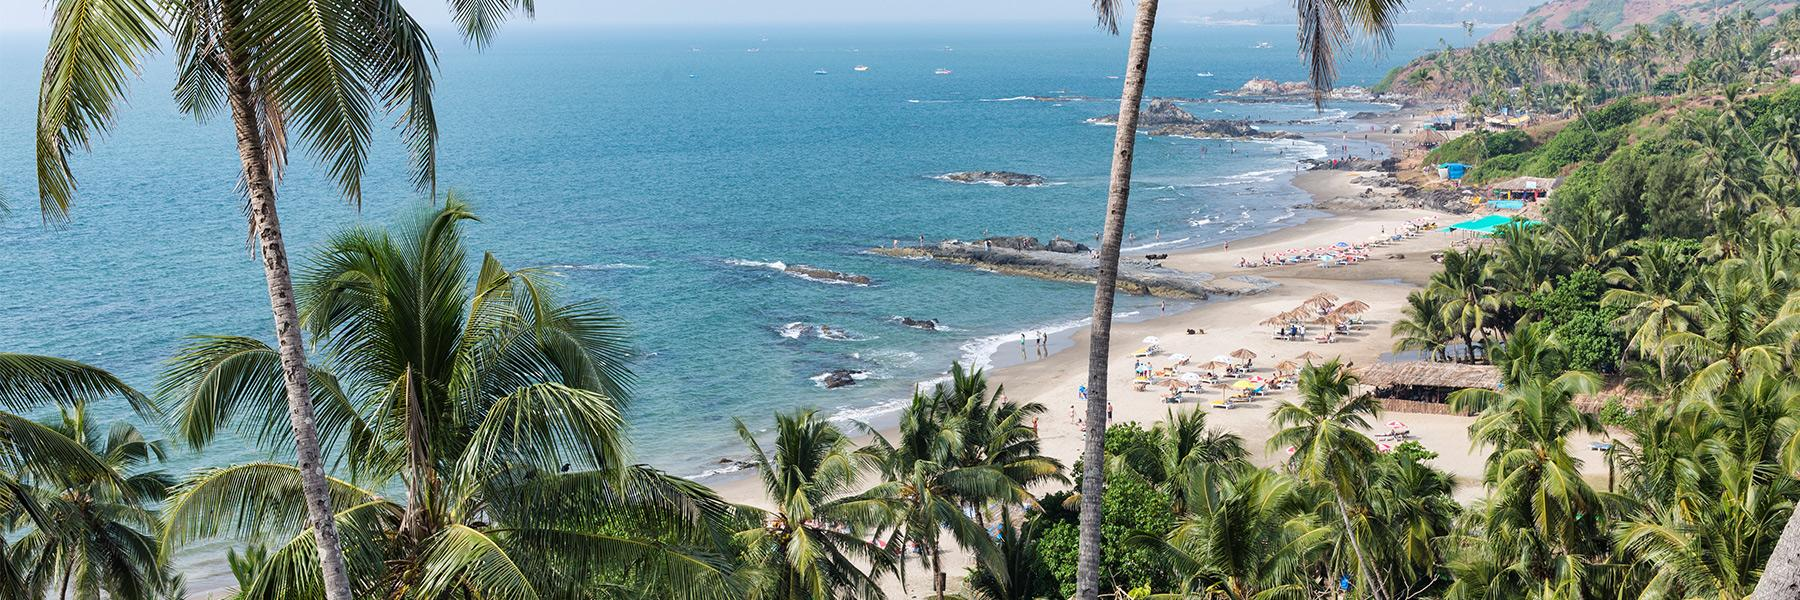 India's Beaches & Islands